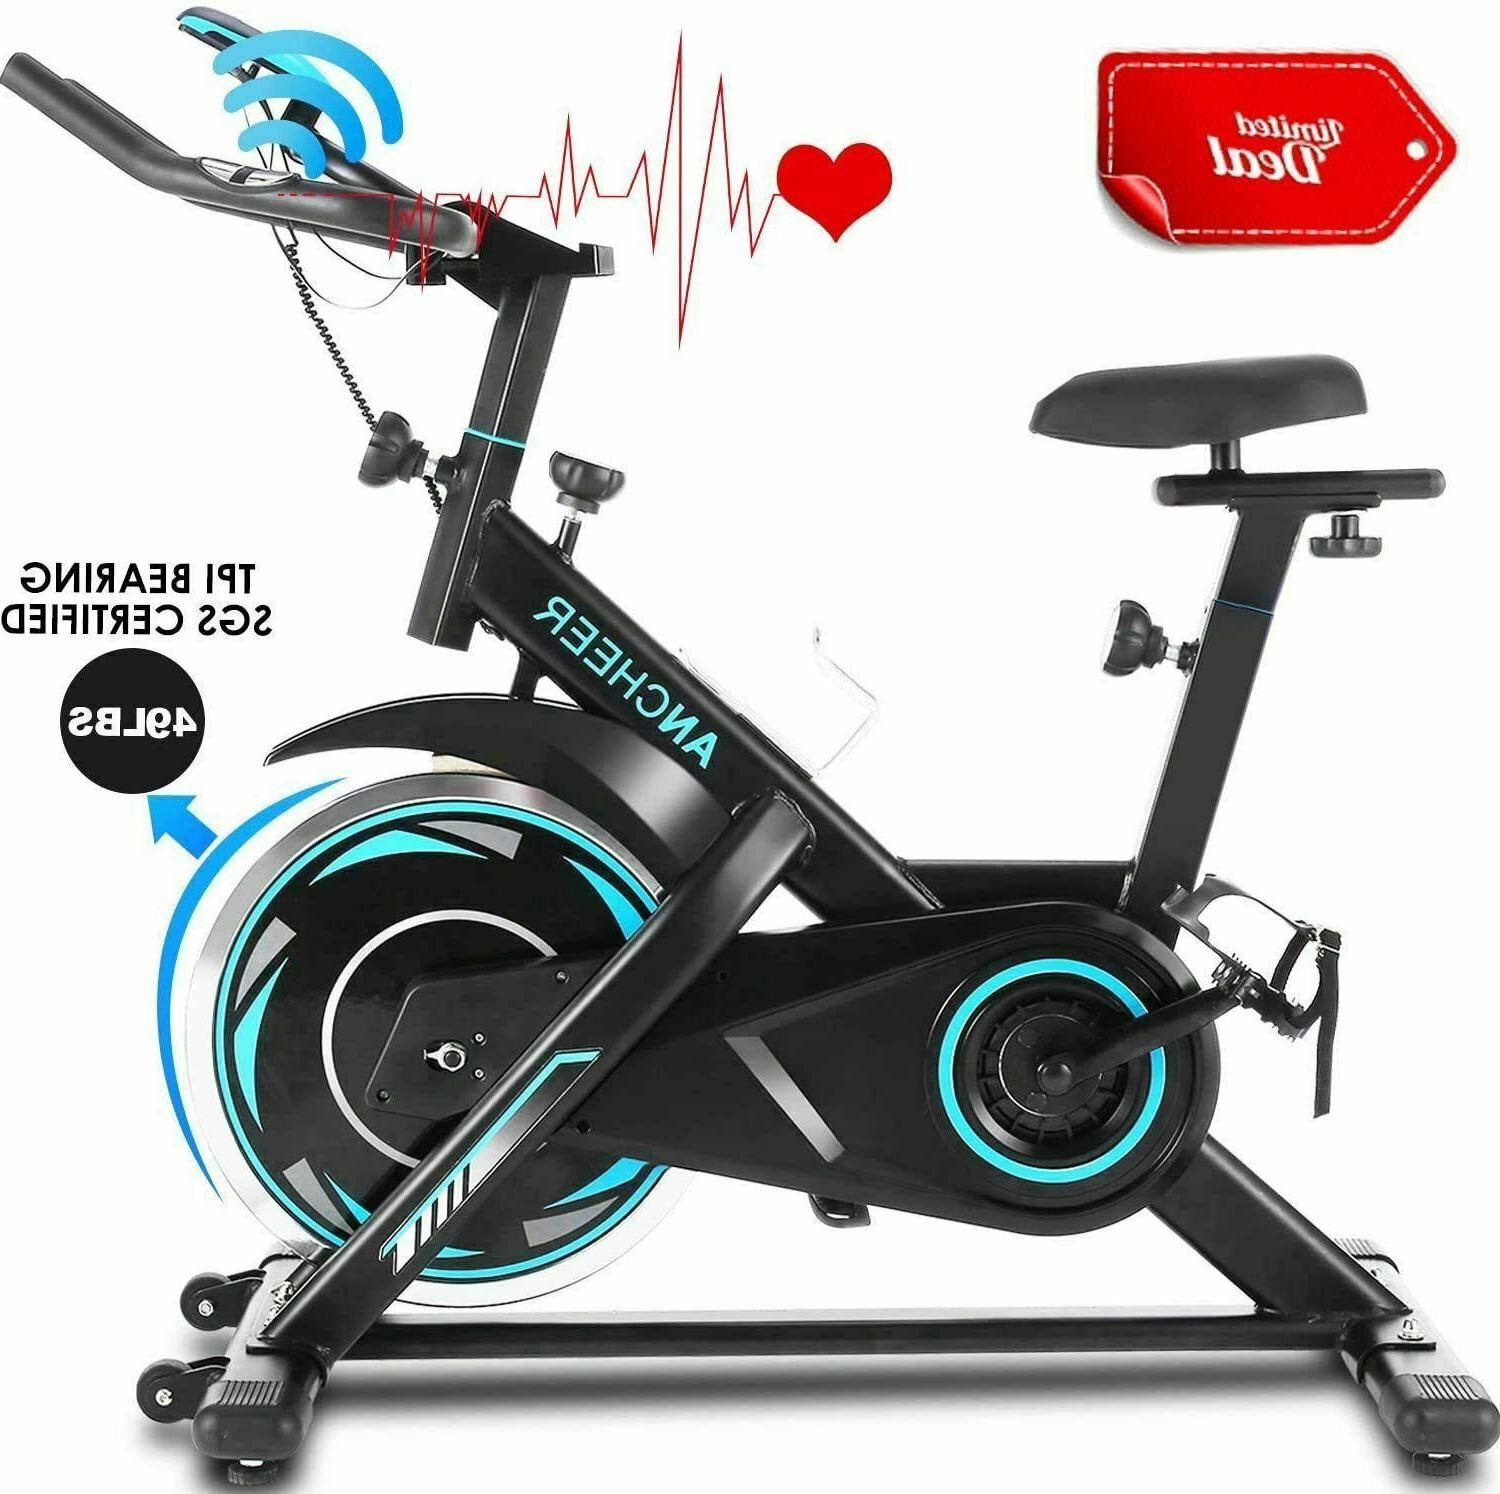 ANCHEER Indoor Exercise Stationary, Cycling w/ Heart Rate